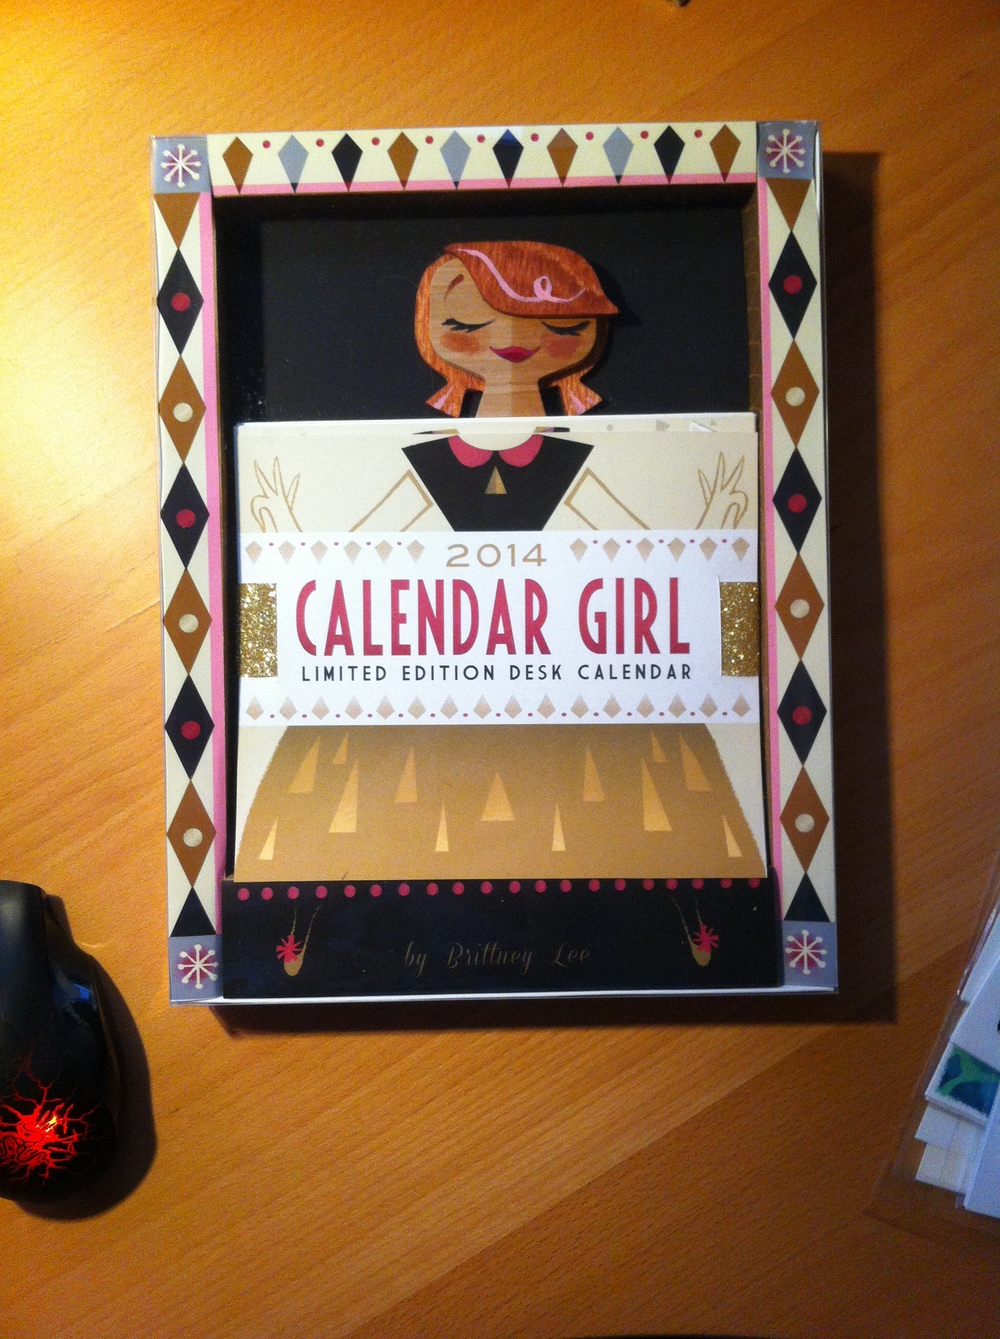 This was only one of three limited edition calendars made by Brittney Lee for CTNx  - each hand made, hand painted. She'll be selling a total of 100 on her site. My lucky Wife Renee was able to snag one. :)